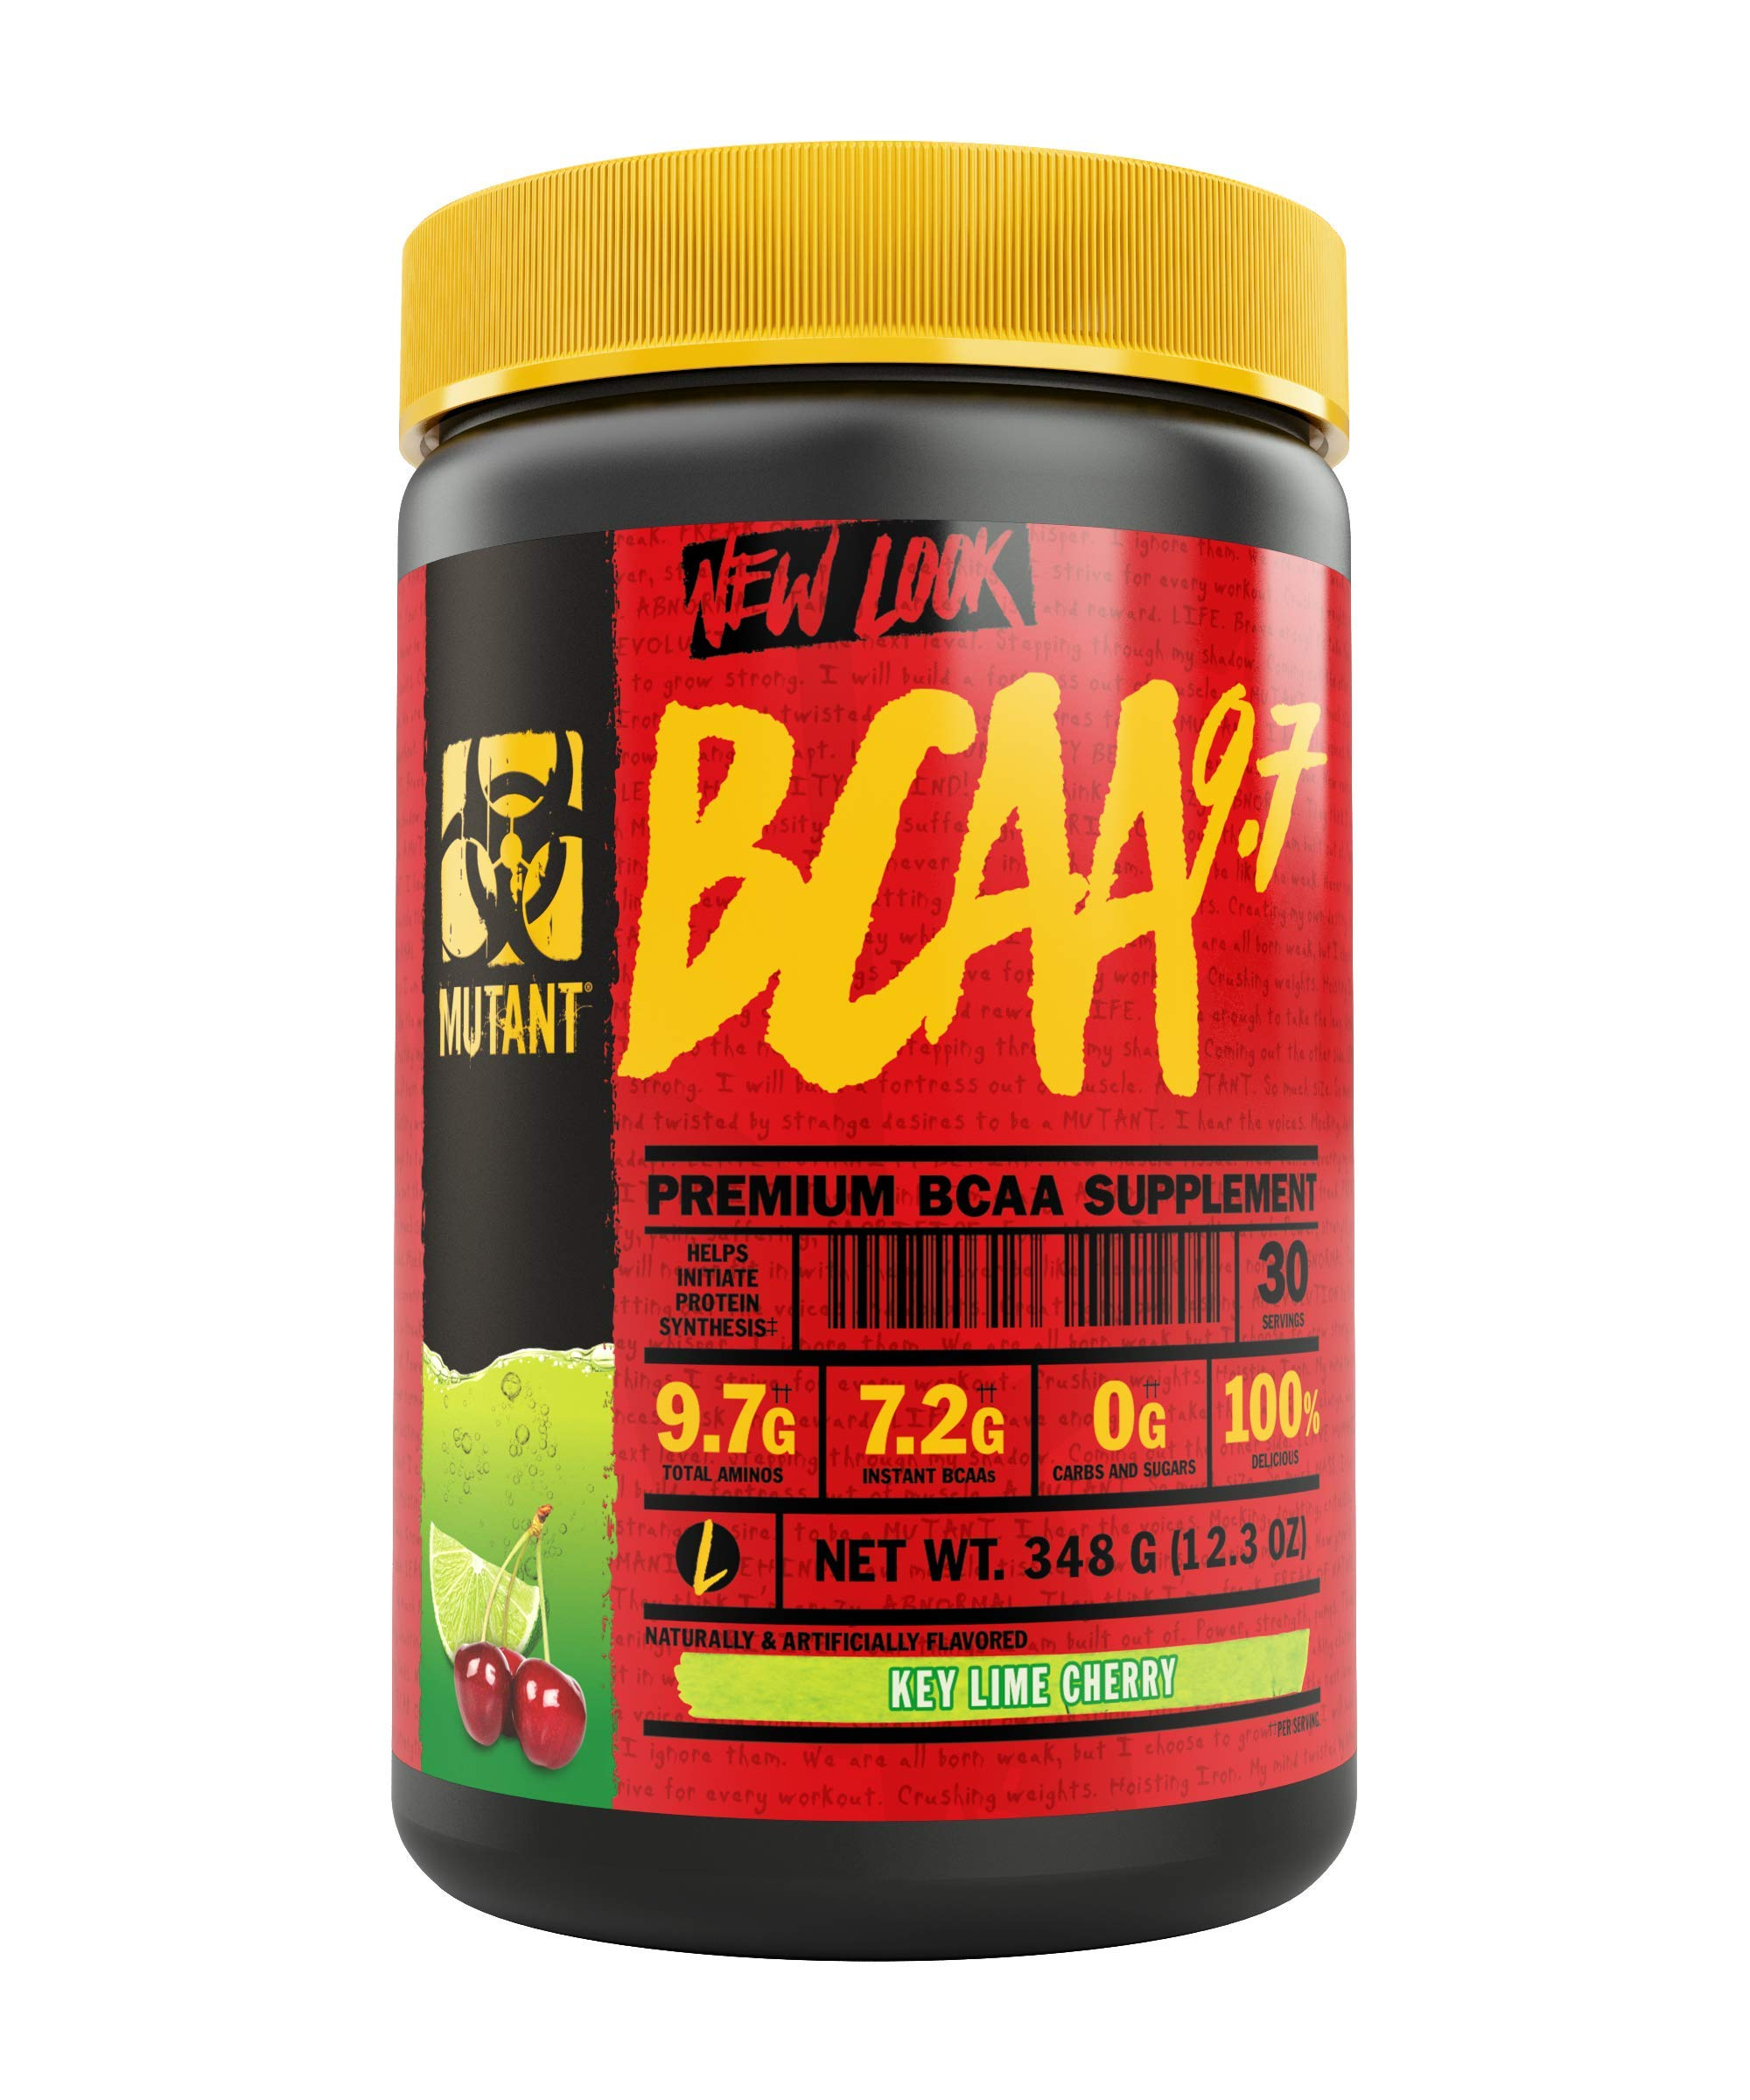 Mutant BCAA 9.7 Supplement BCAA Powder with Micronized Amino Energy Support Stack, 348g - Key Lime Cherry